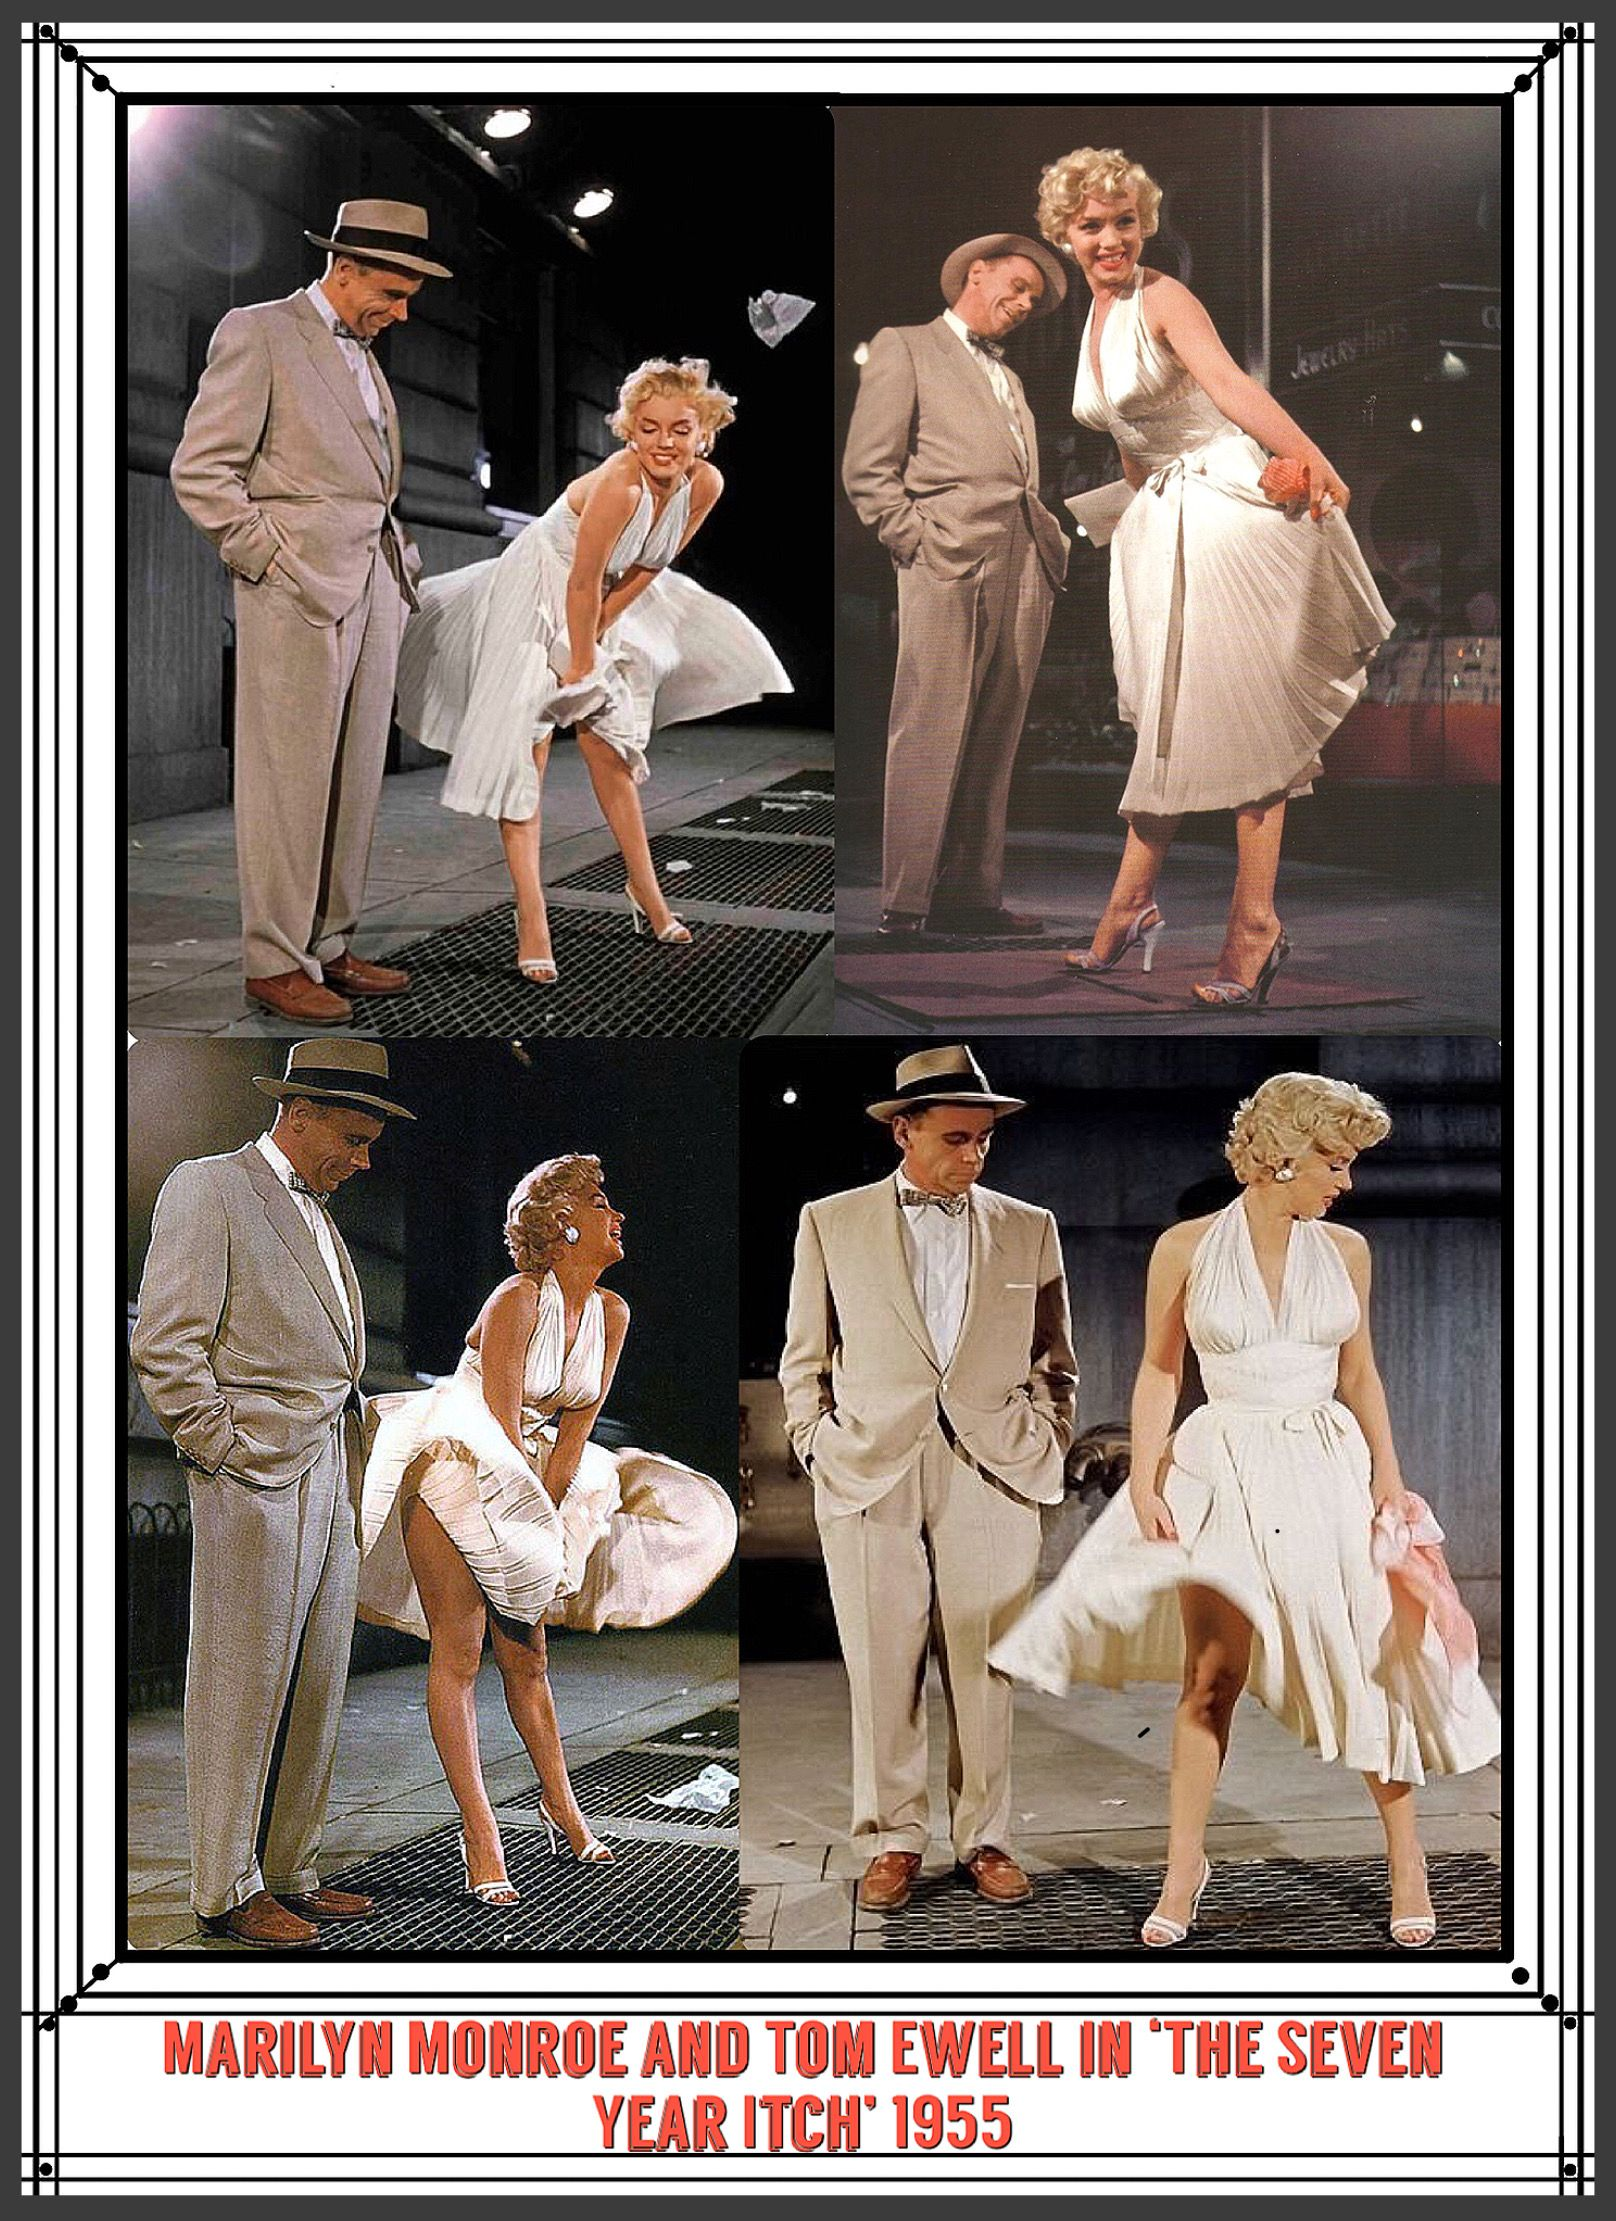 MARILYN MONROE 7 YEAR ITCH ONtheSET 2xRARE4x6 PHOTOS